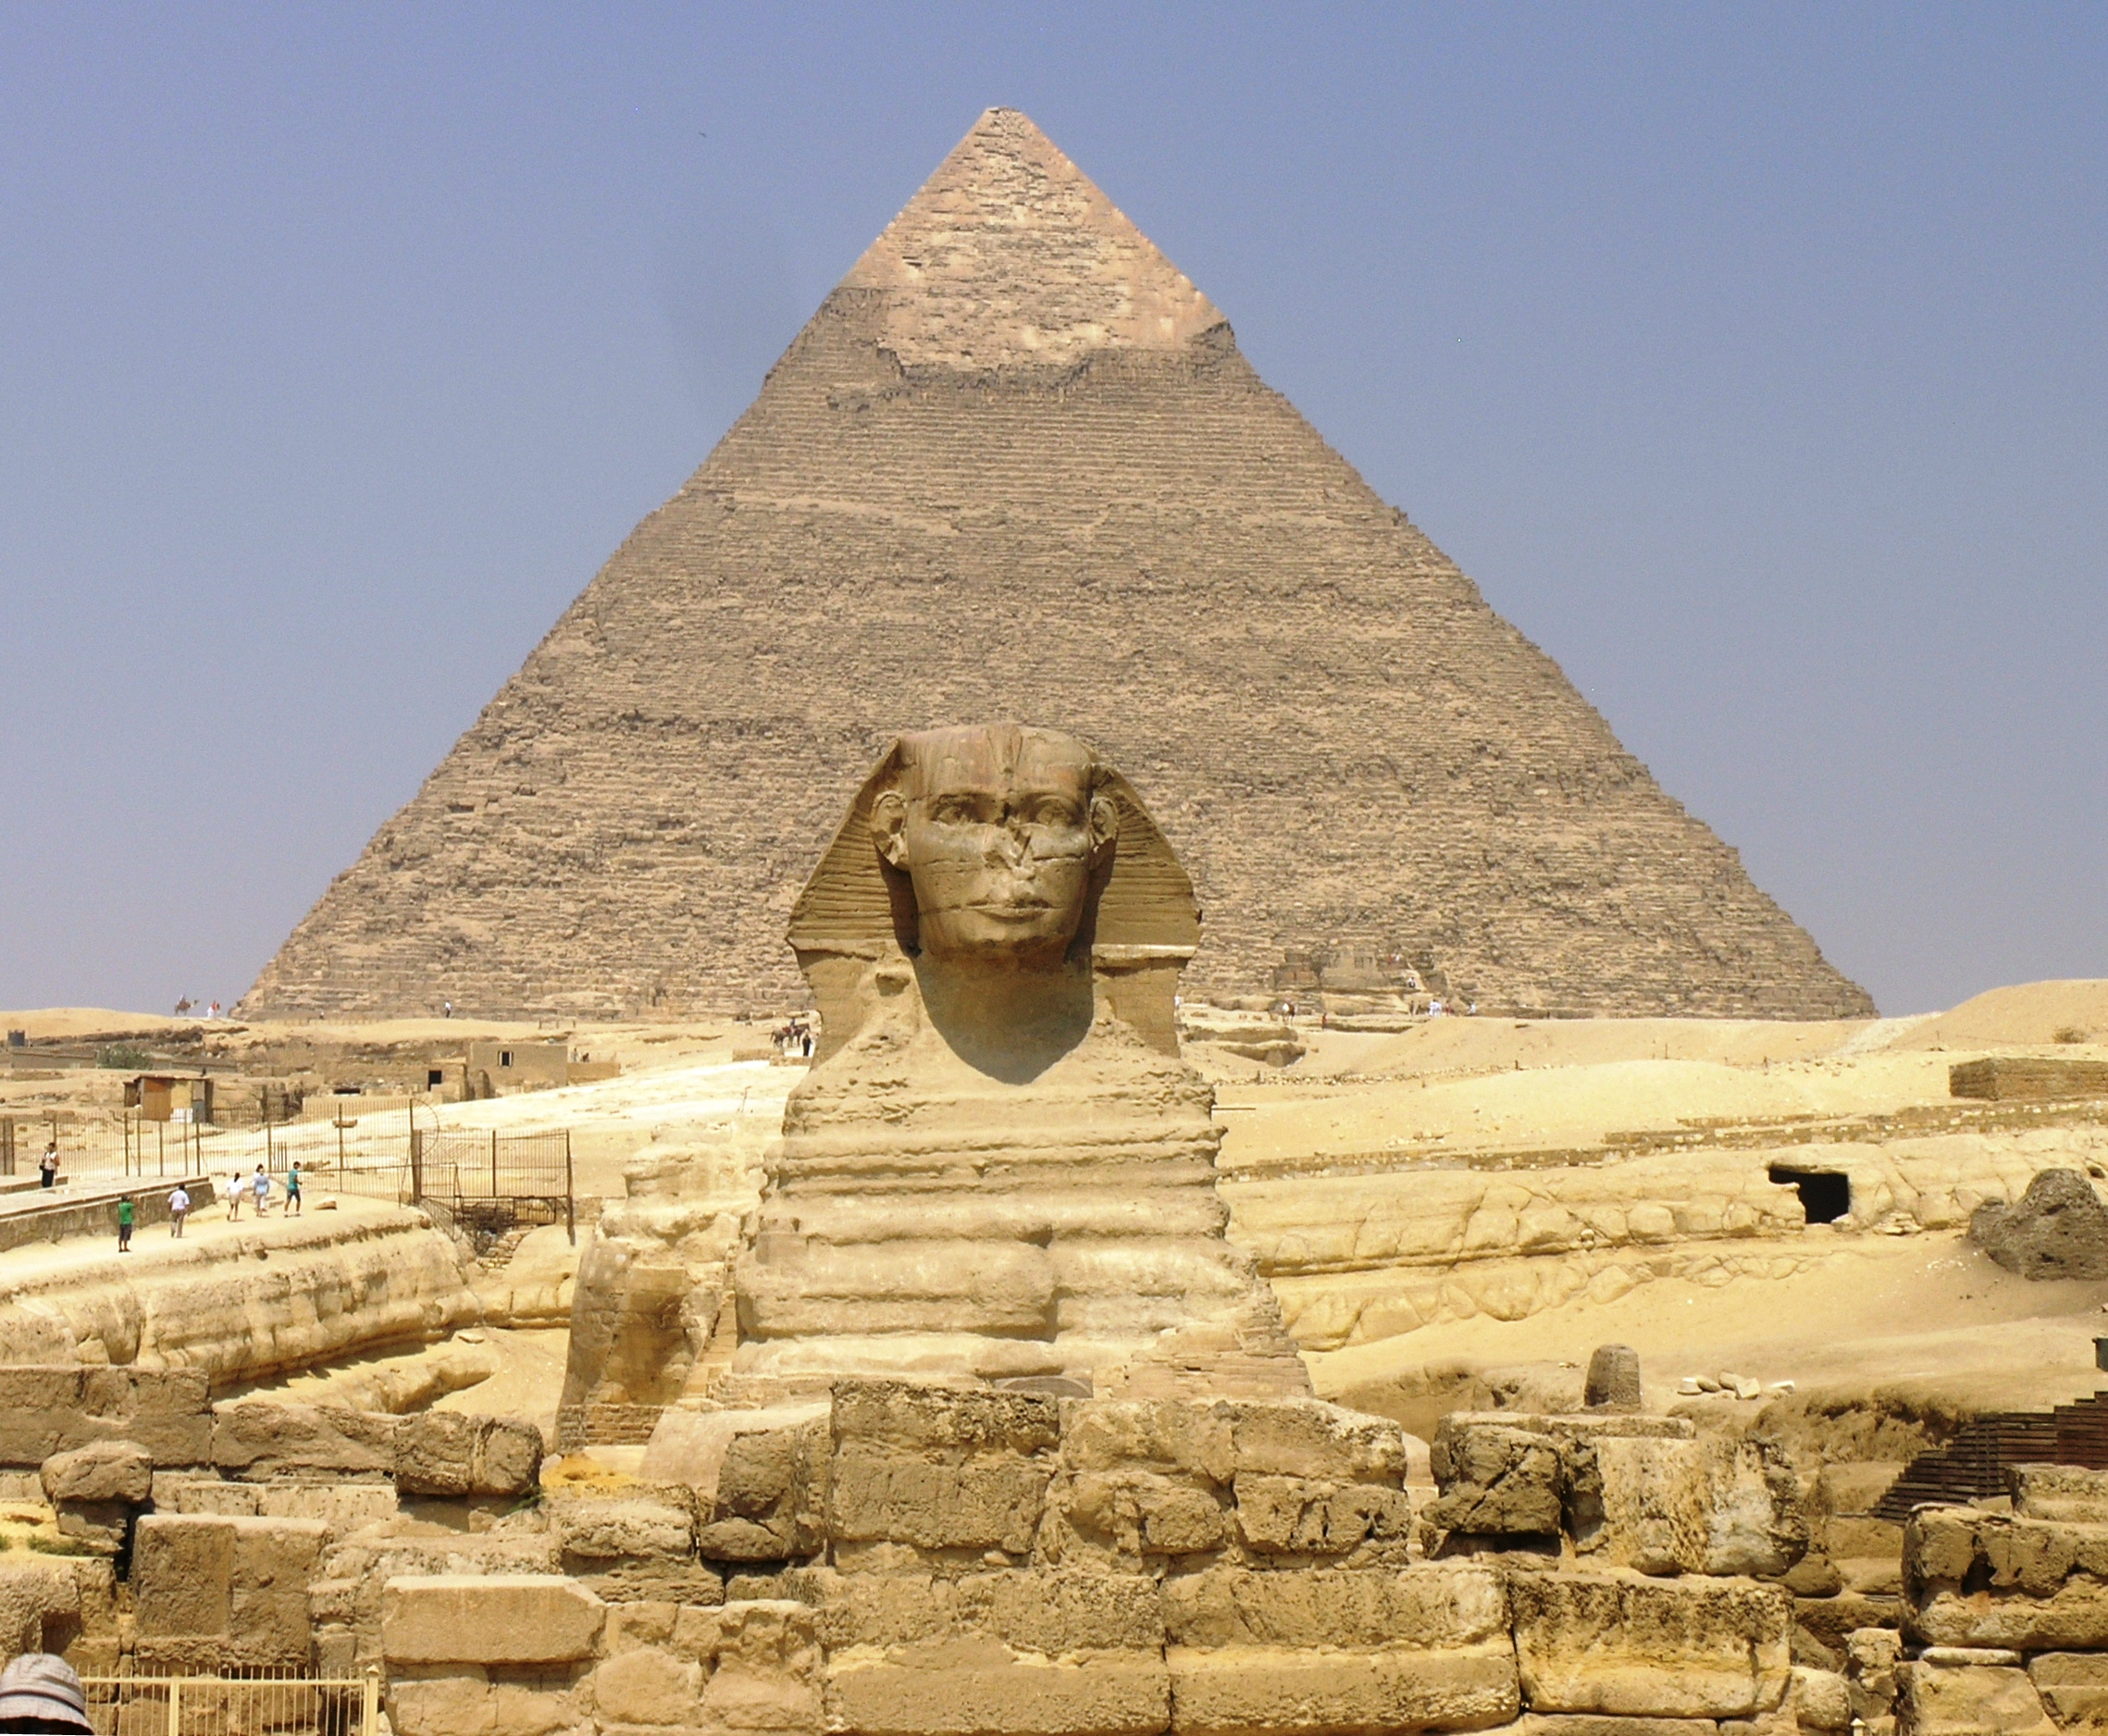 the origin of the pyramids and sphinx of egypt Dates / origin date issued: 1939  great sphinx (egypt) pyramids of giza (egypt  sphinx and pyramids, memphis, egypt the new york public library digital.